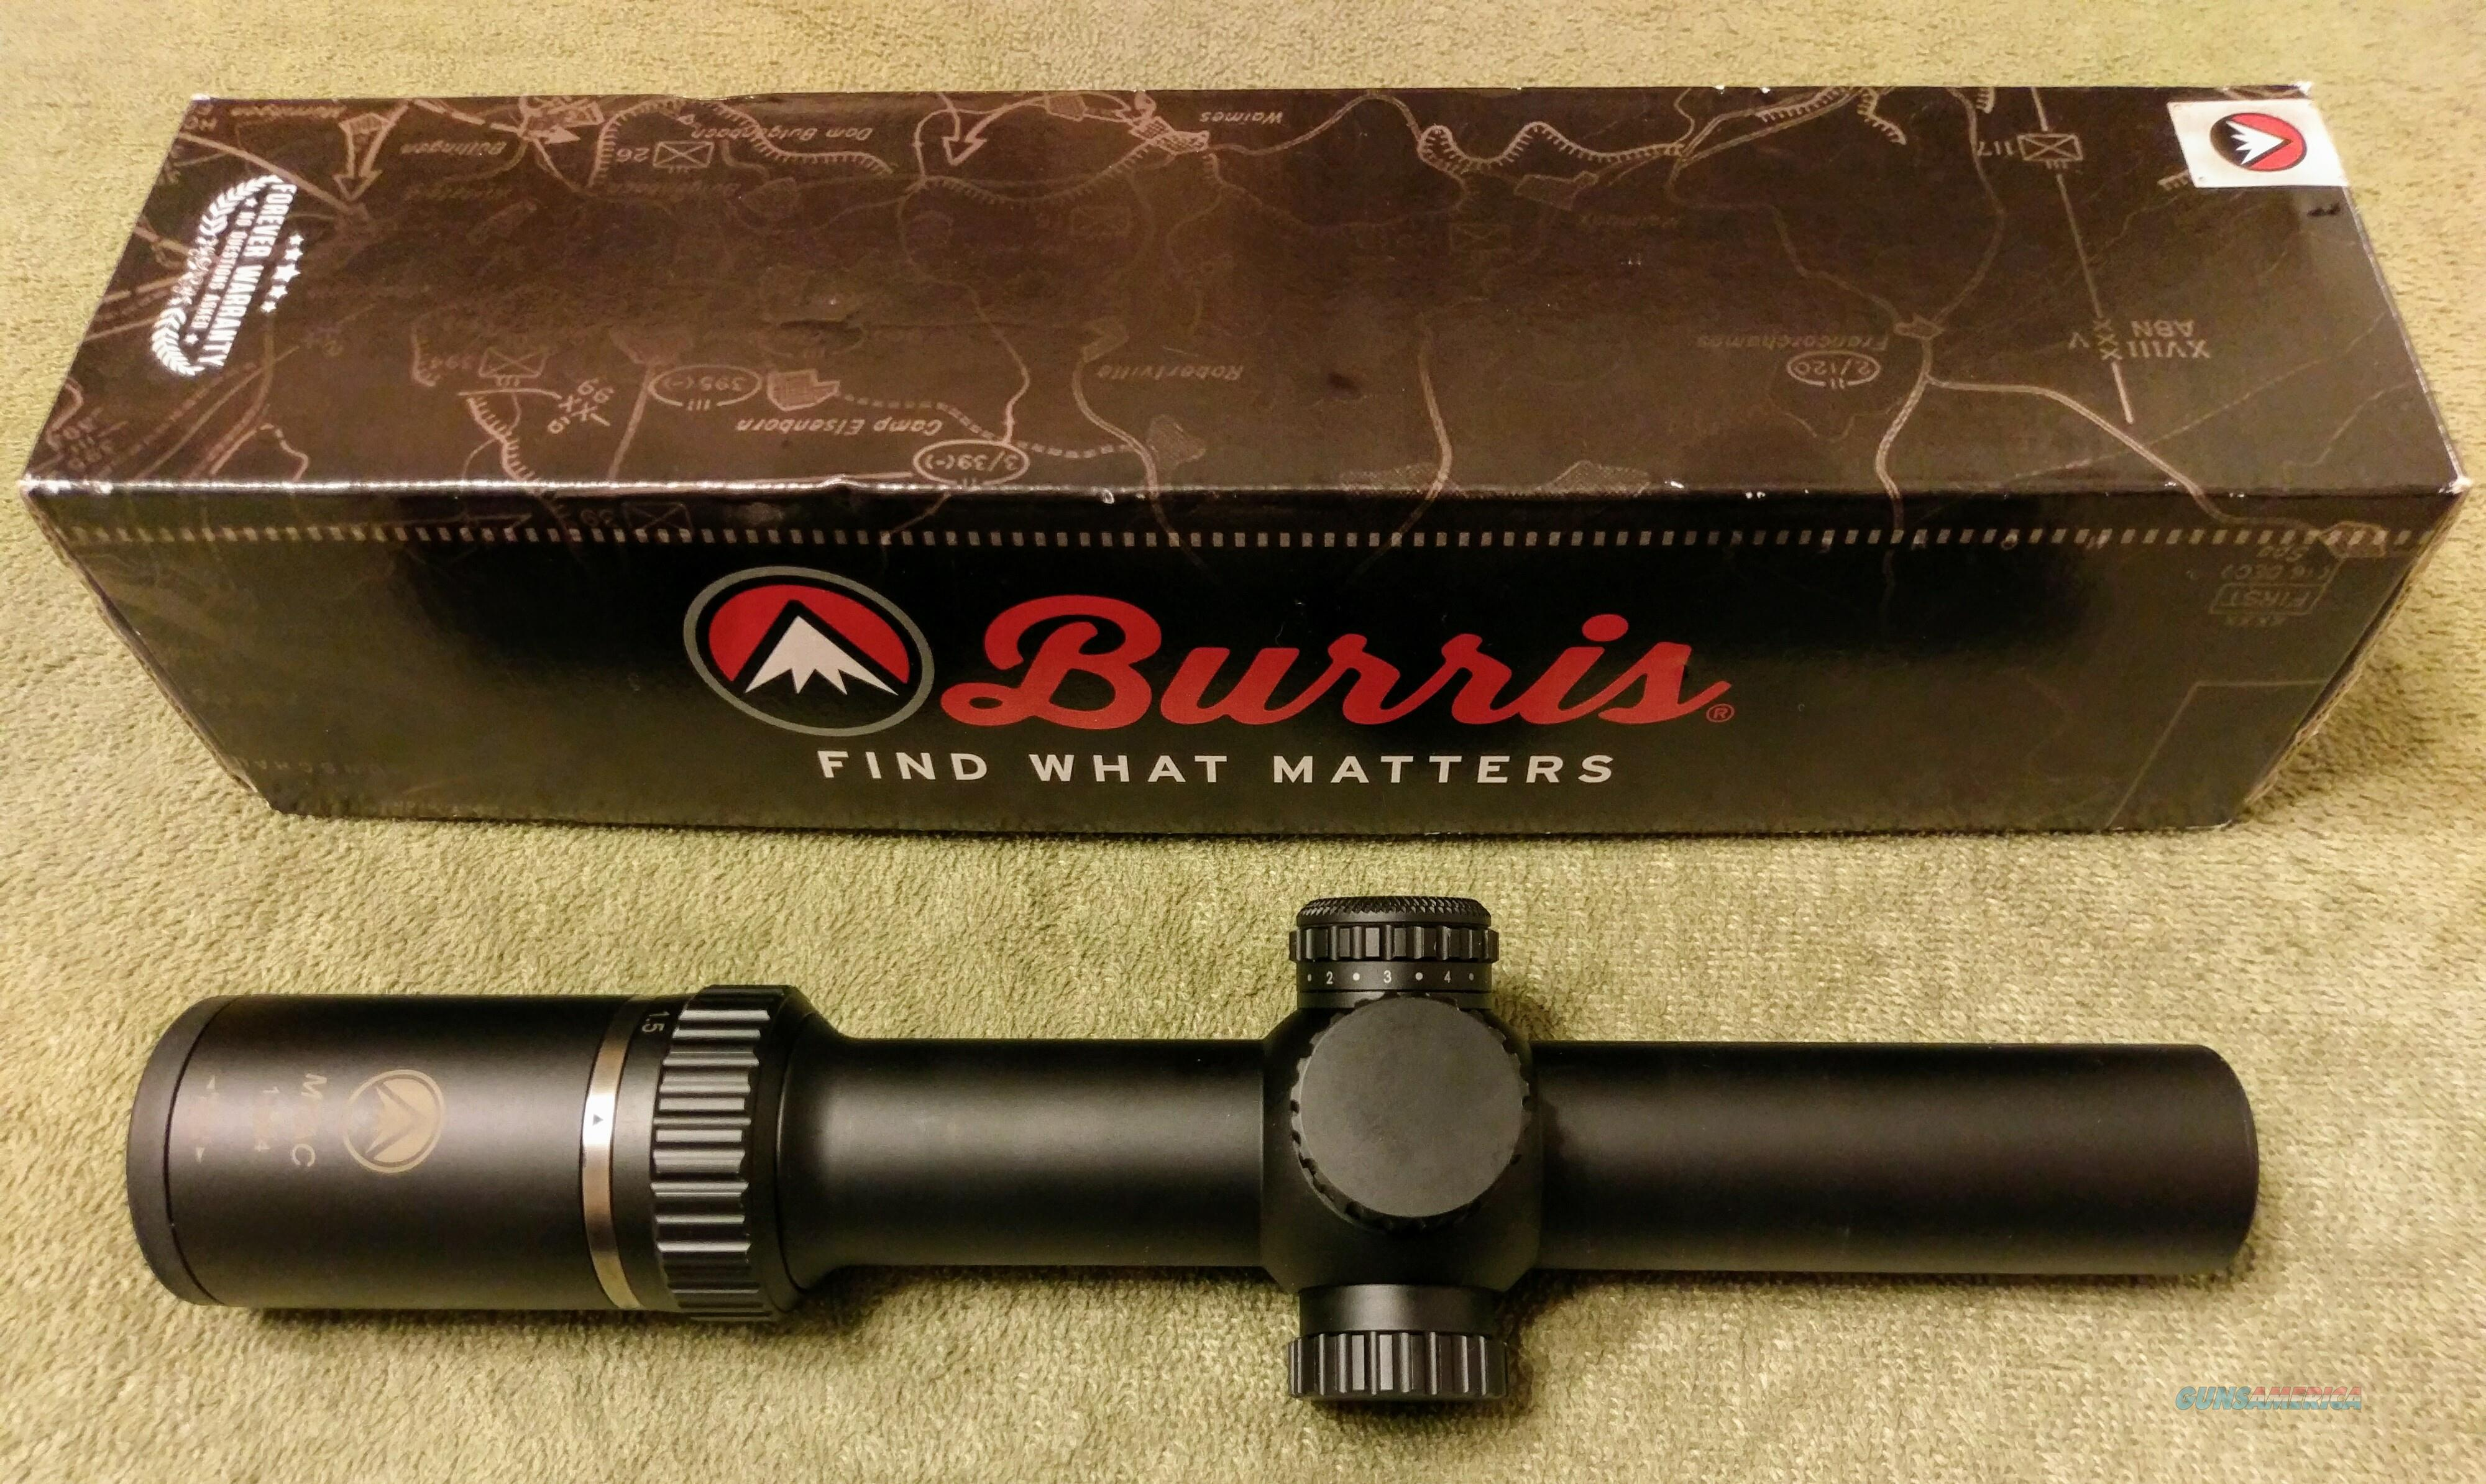 Burris MTAC 1-4x Scope  Non-Guns > Scopes/Mounts/Rings & Optics > Tactical Scopes > Variable Recticle